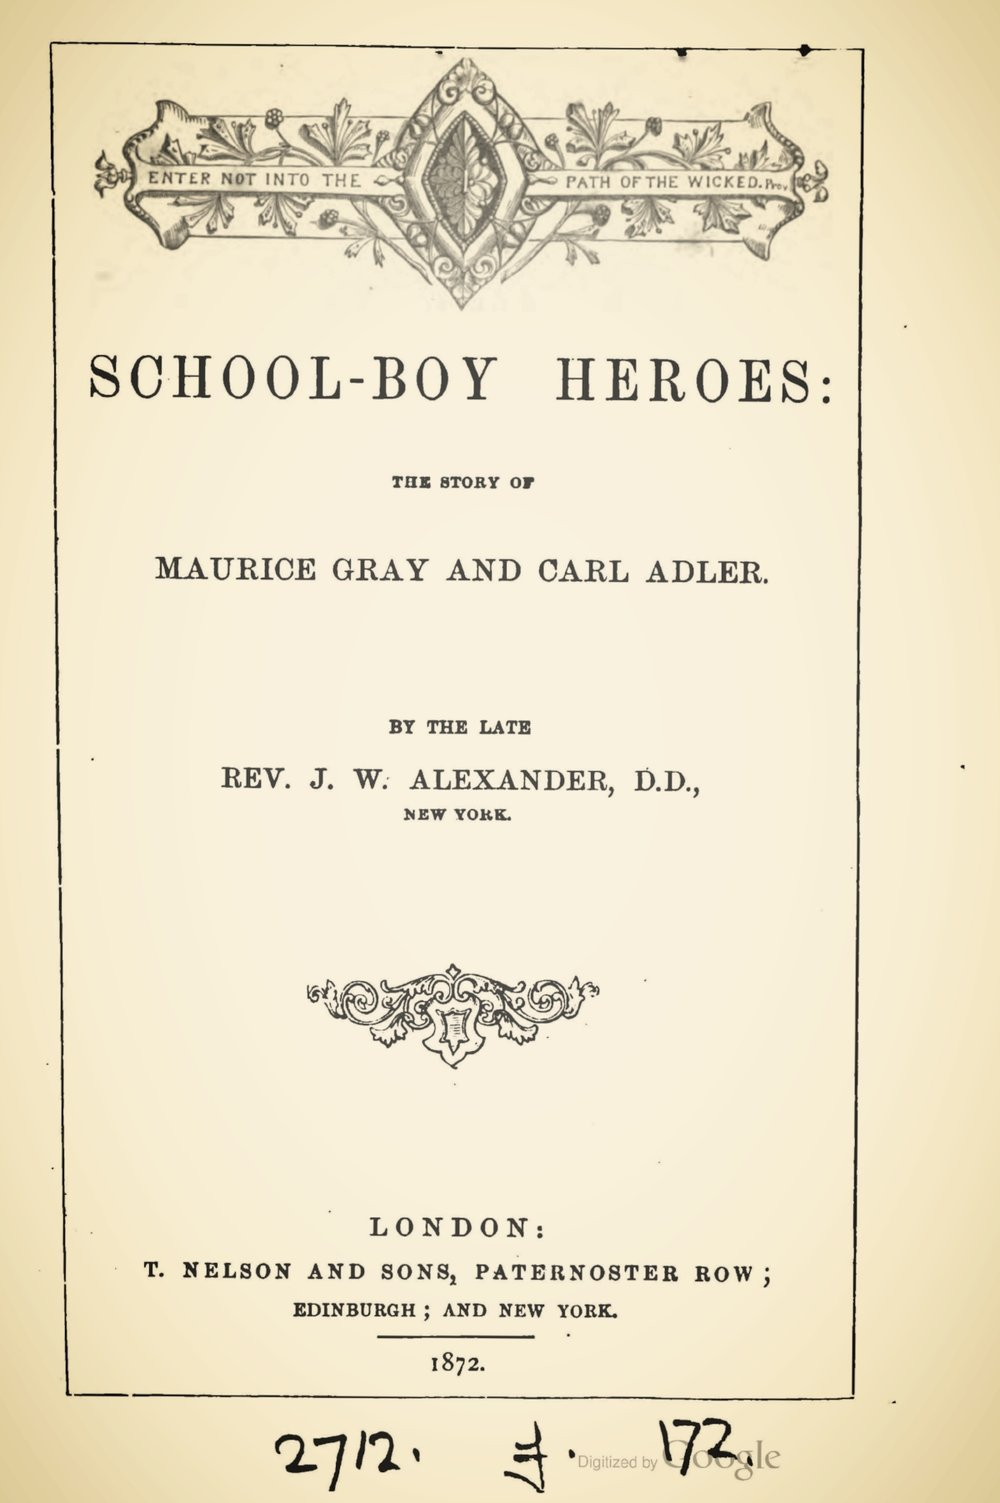 Alexander, James Waddel, School-Boy Heroes Title Page.jpg